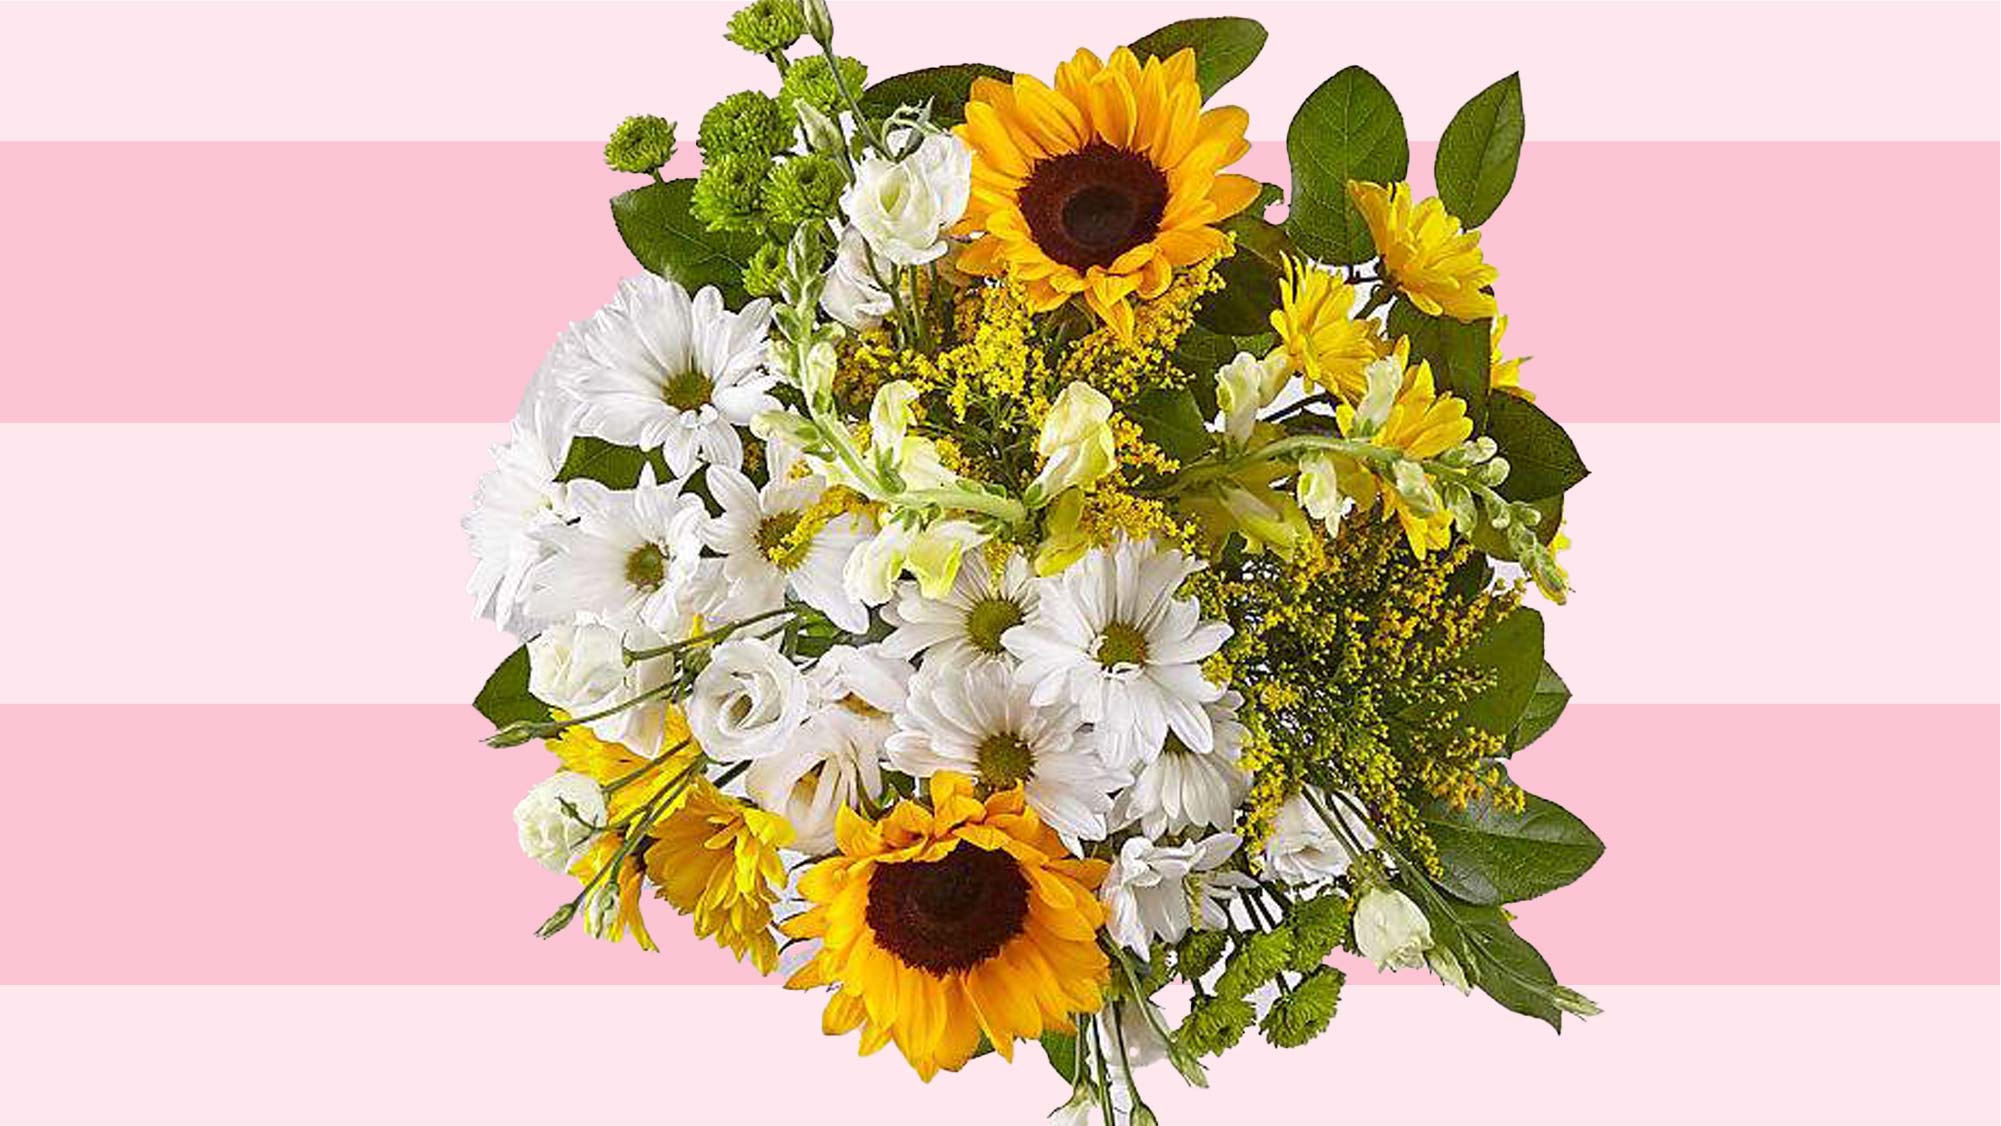 Bouquets from Proflowers